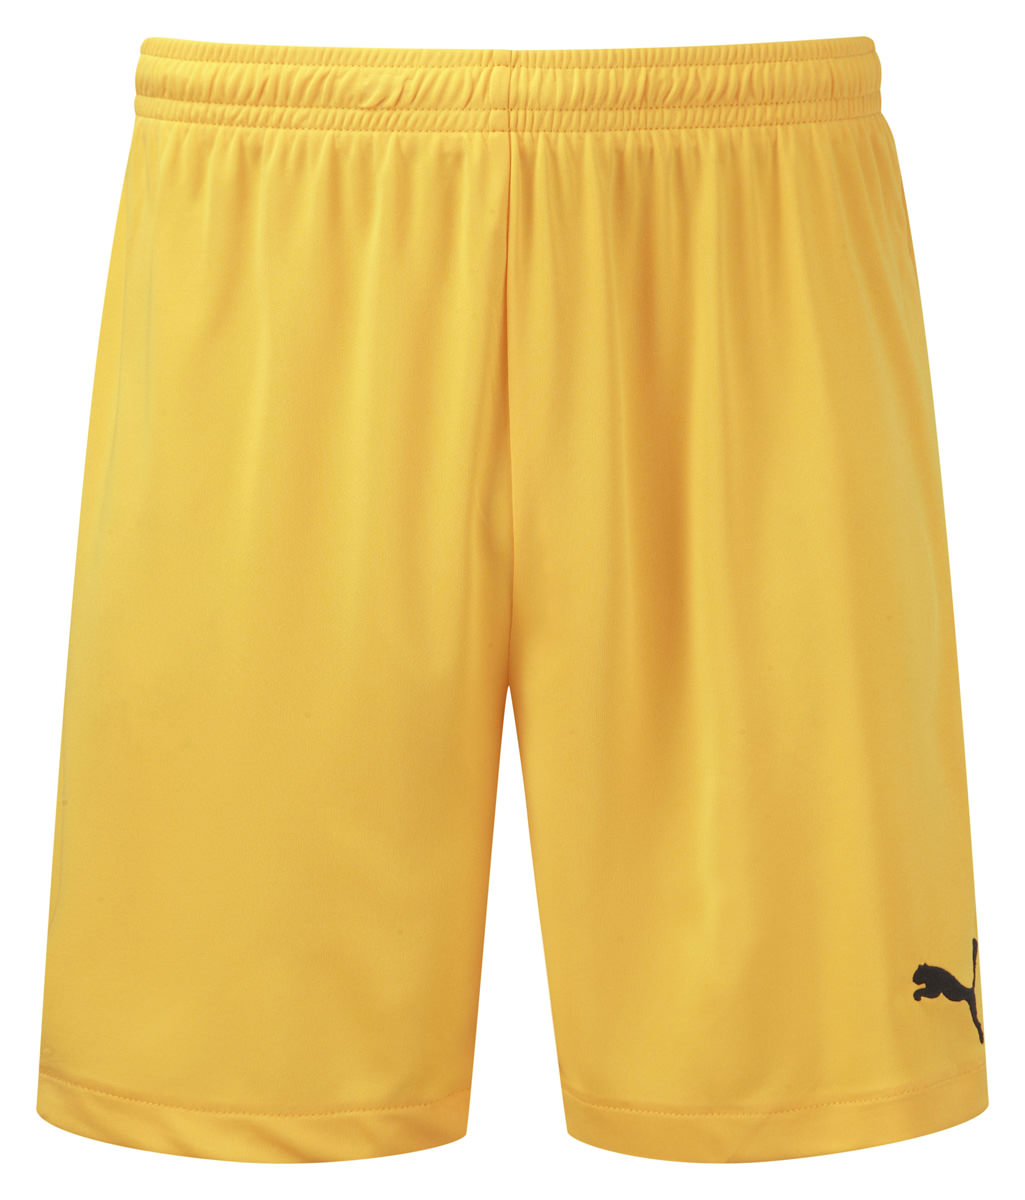 Puma SMU Velize Shorts - Yellow